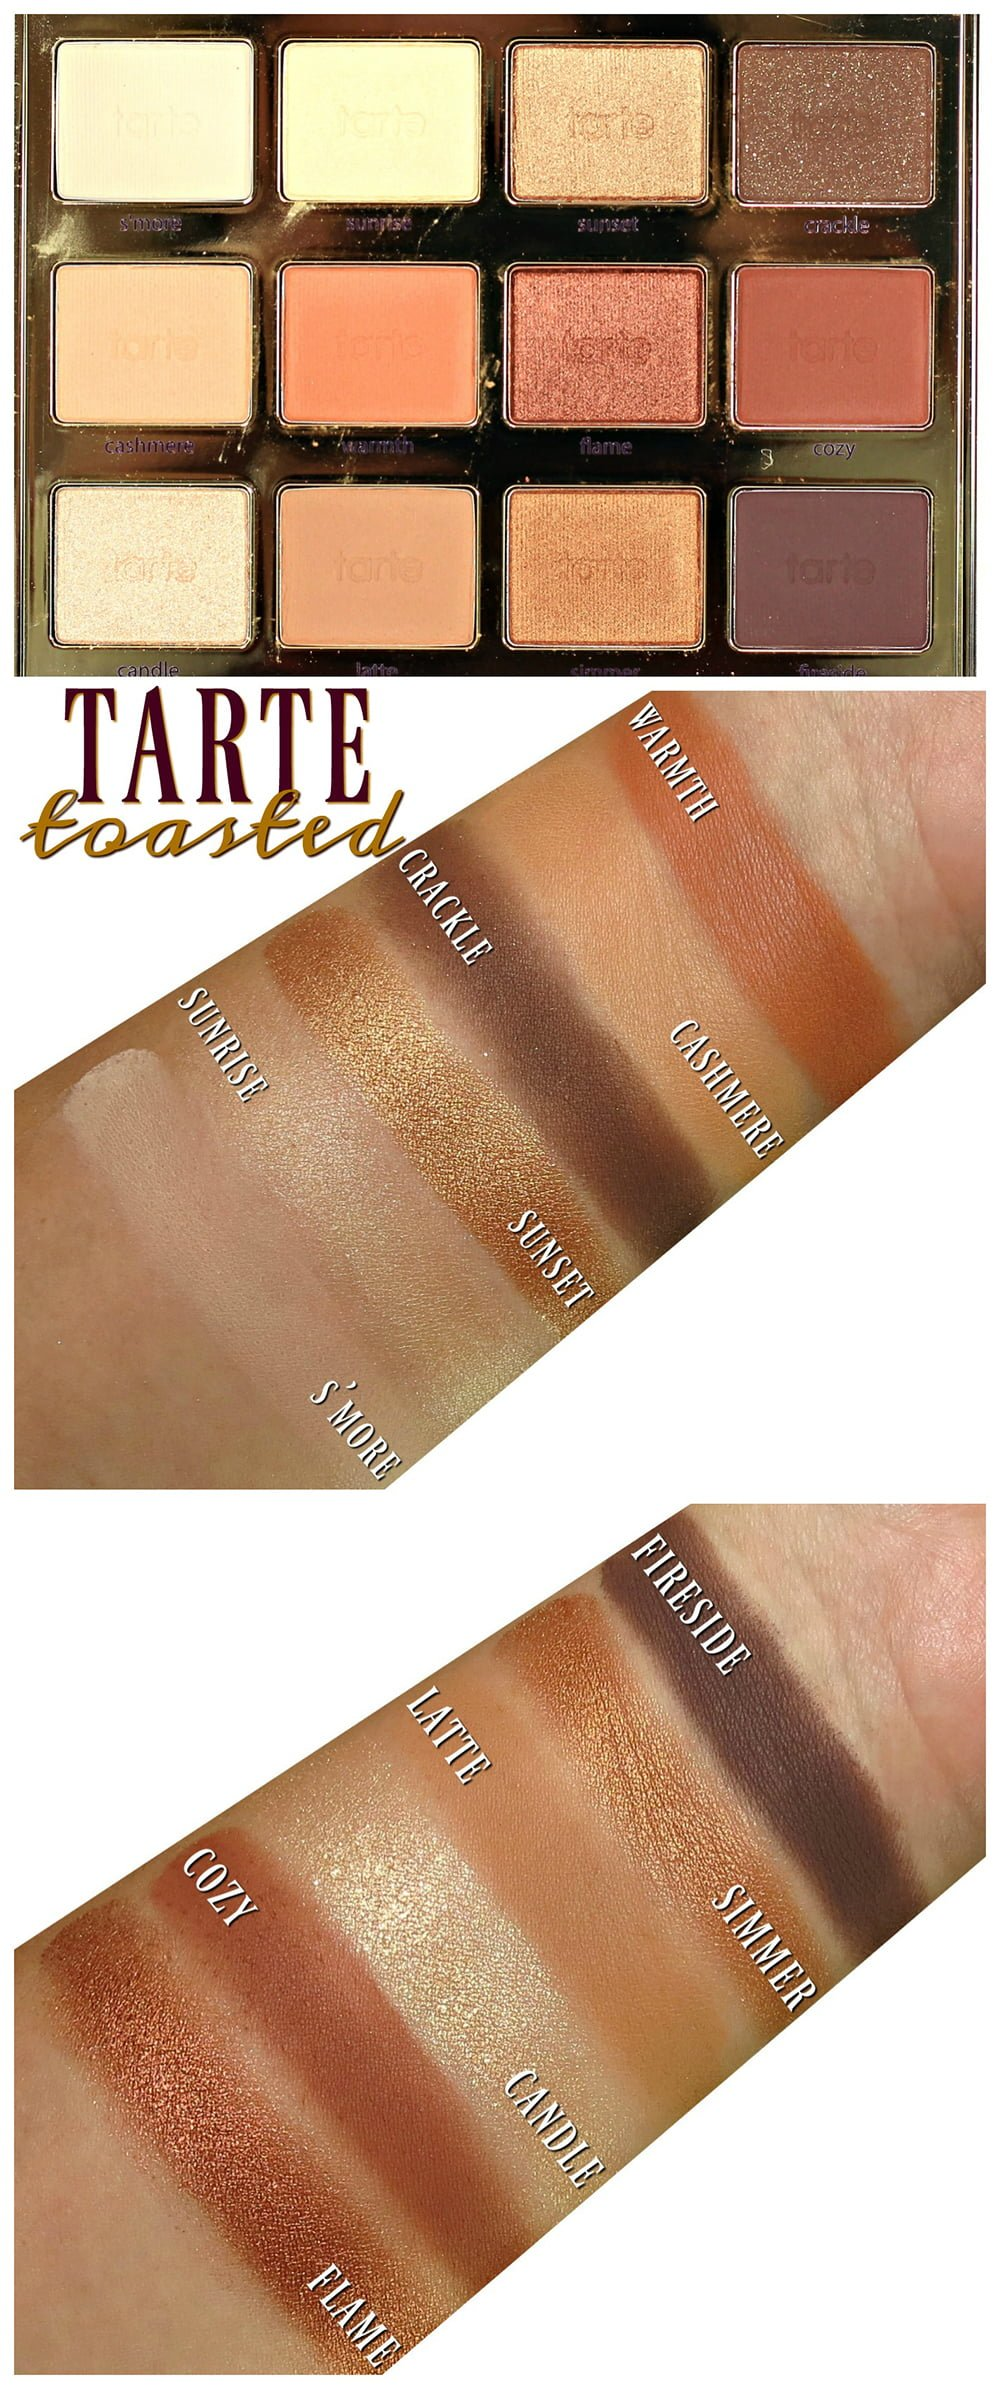 Tarte Tartelette Toasted Eyeshadow Palette Swatches, Review + EOTD